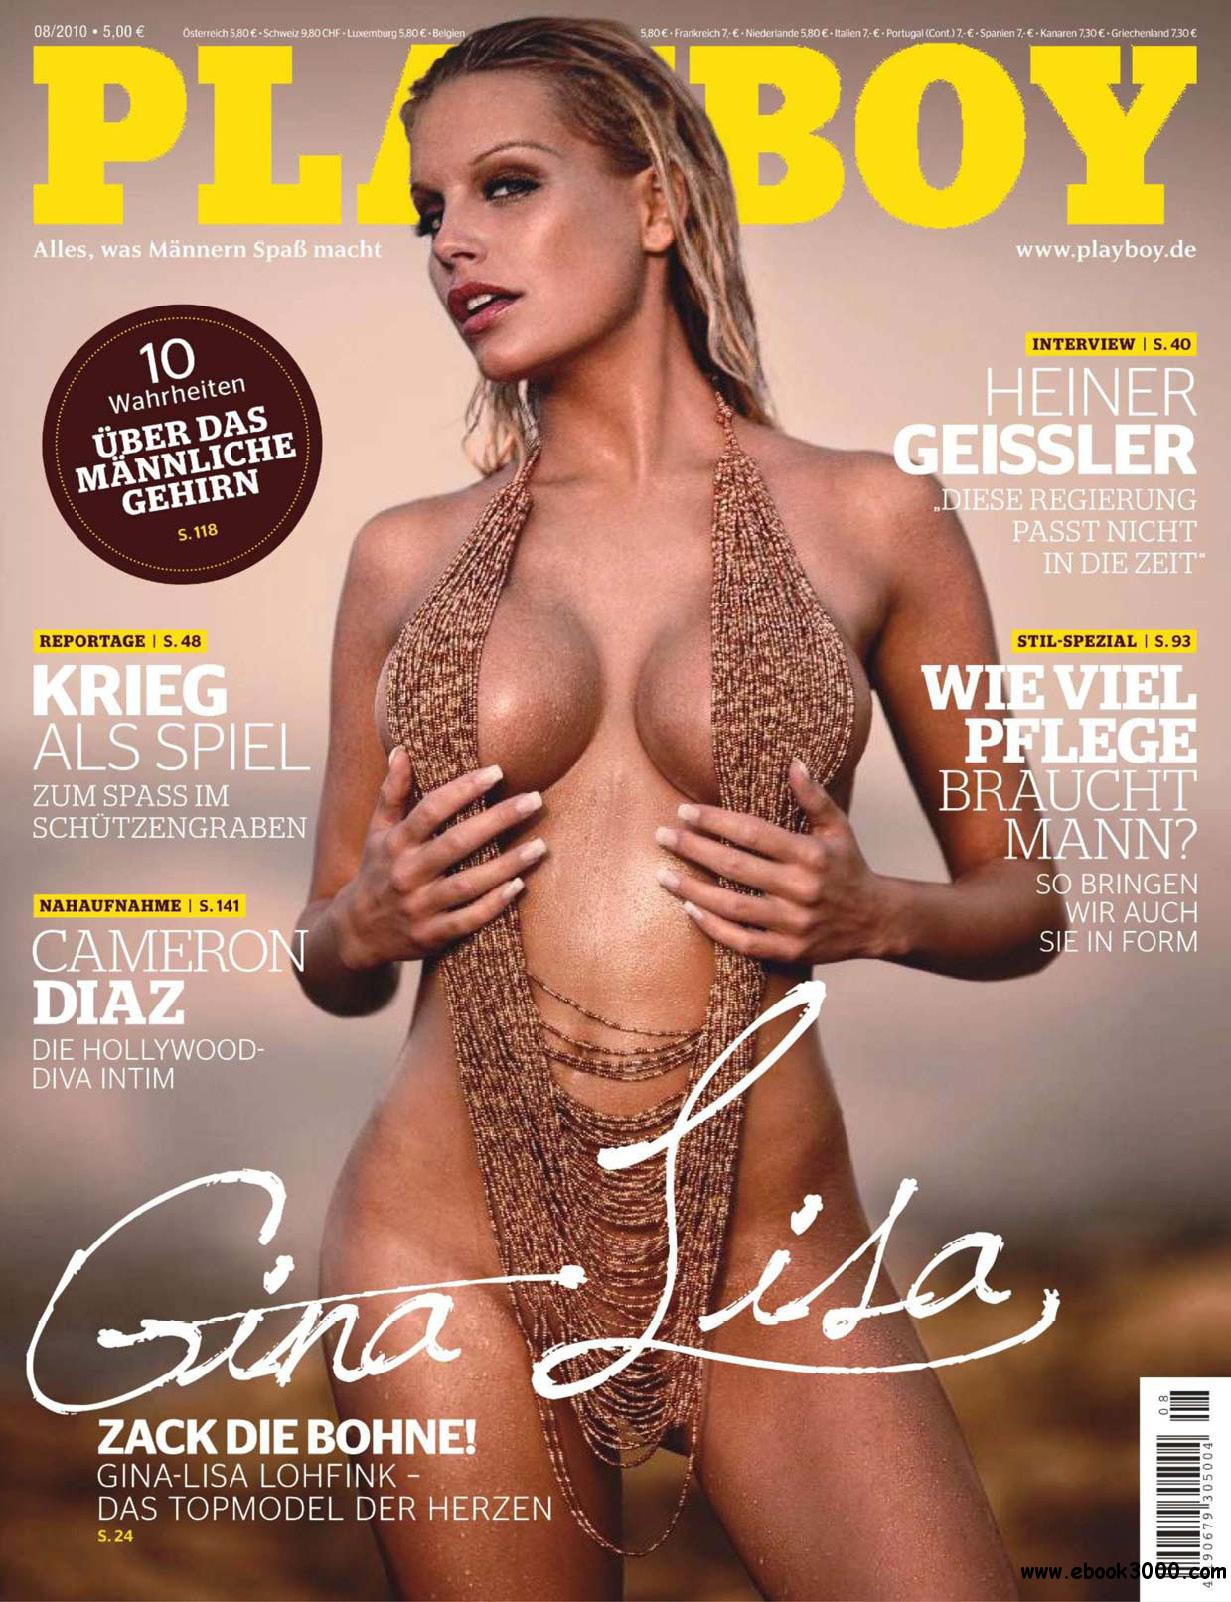 Playboy Germany - August 2010 free download